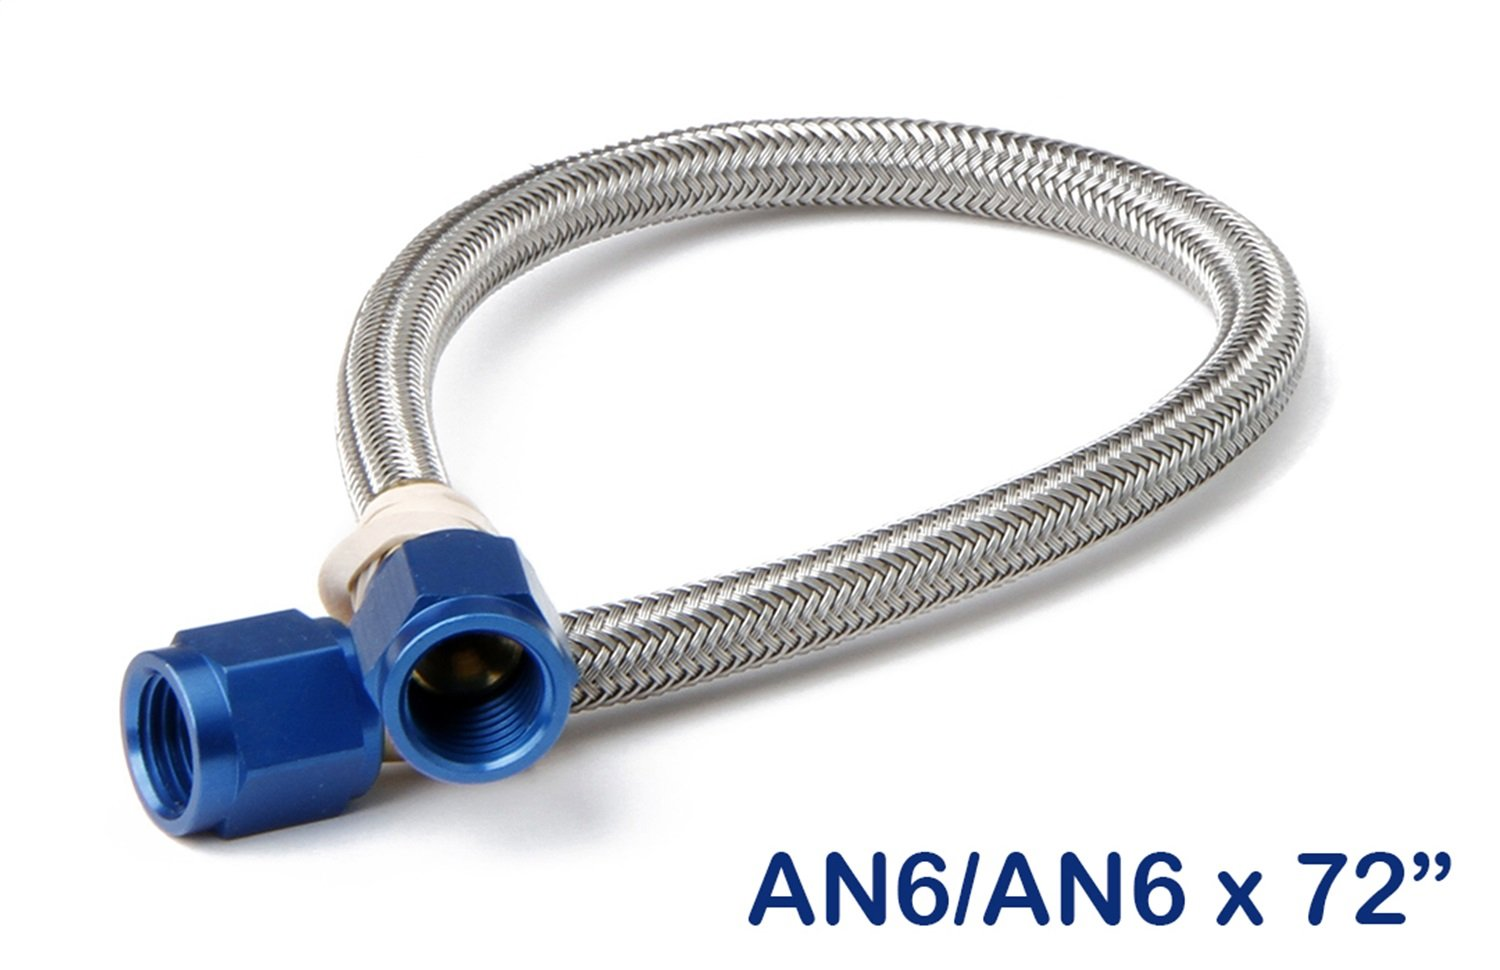 6AN Braided Hose 6 Feet NOS//Nitrous Oxide System NOS 15430NOS Stainless Steel